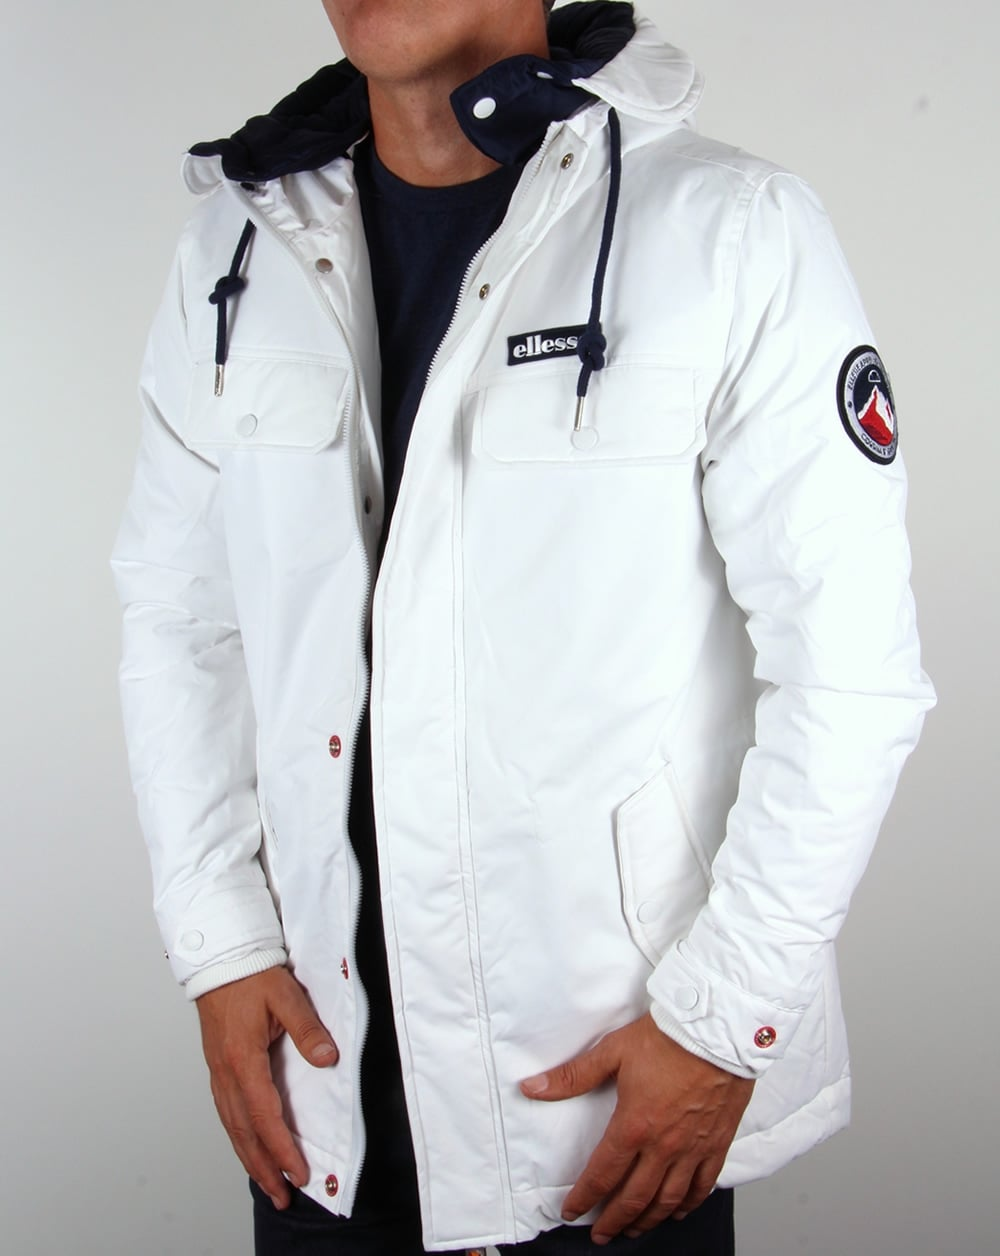 Ellesse Ski Jacket White Dolmites Padded Coat Parka Mens